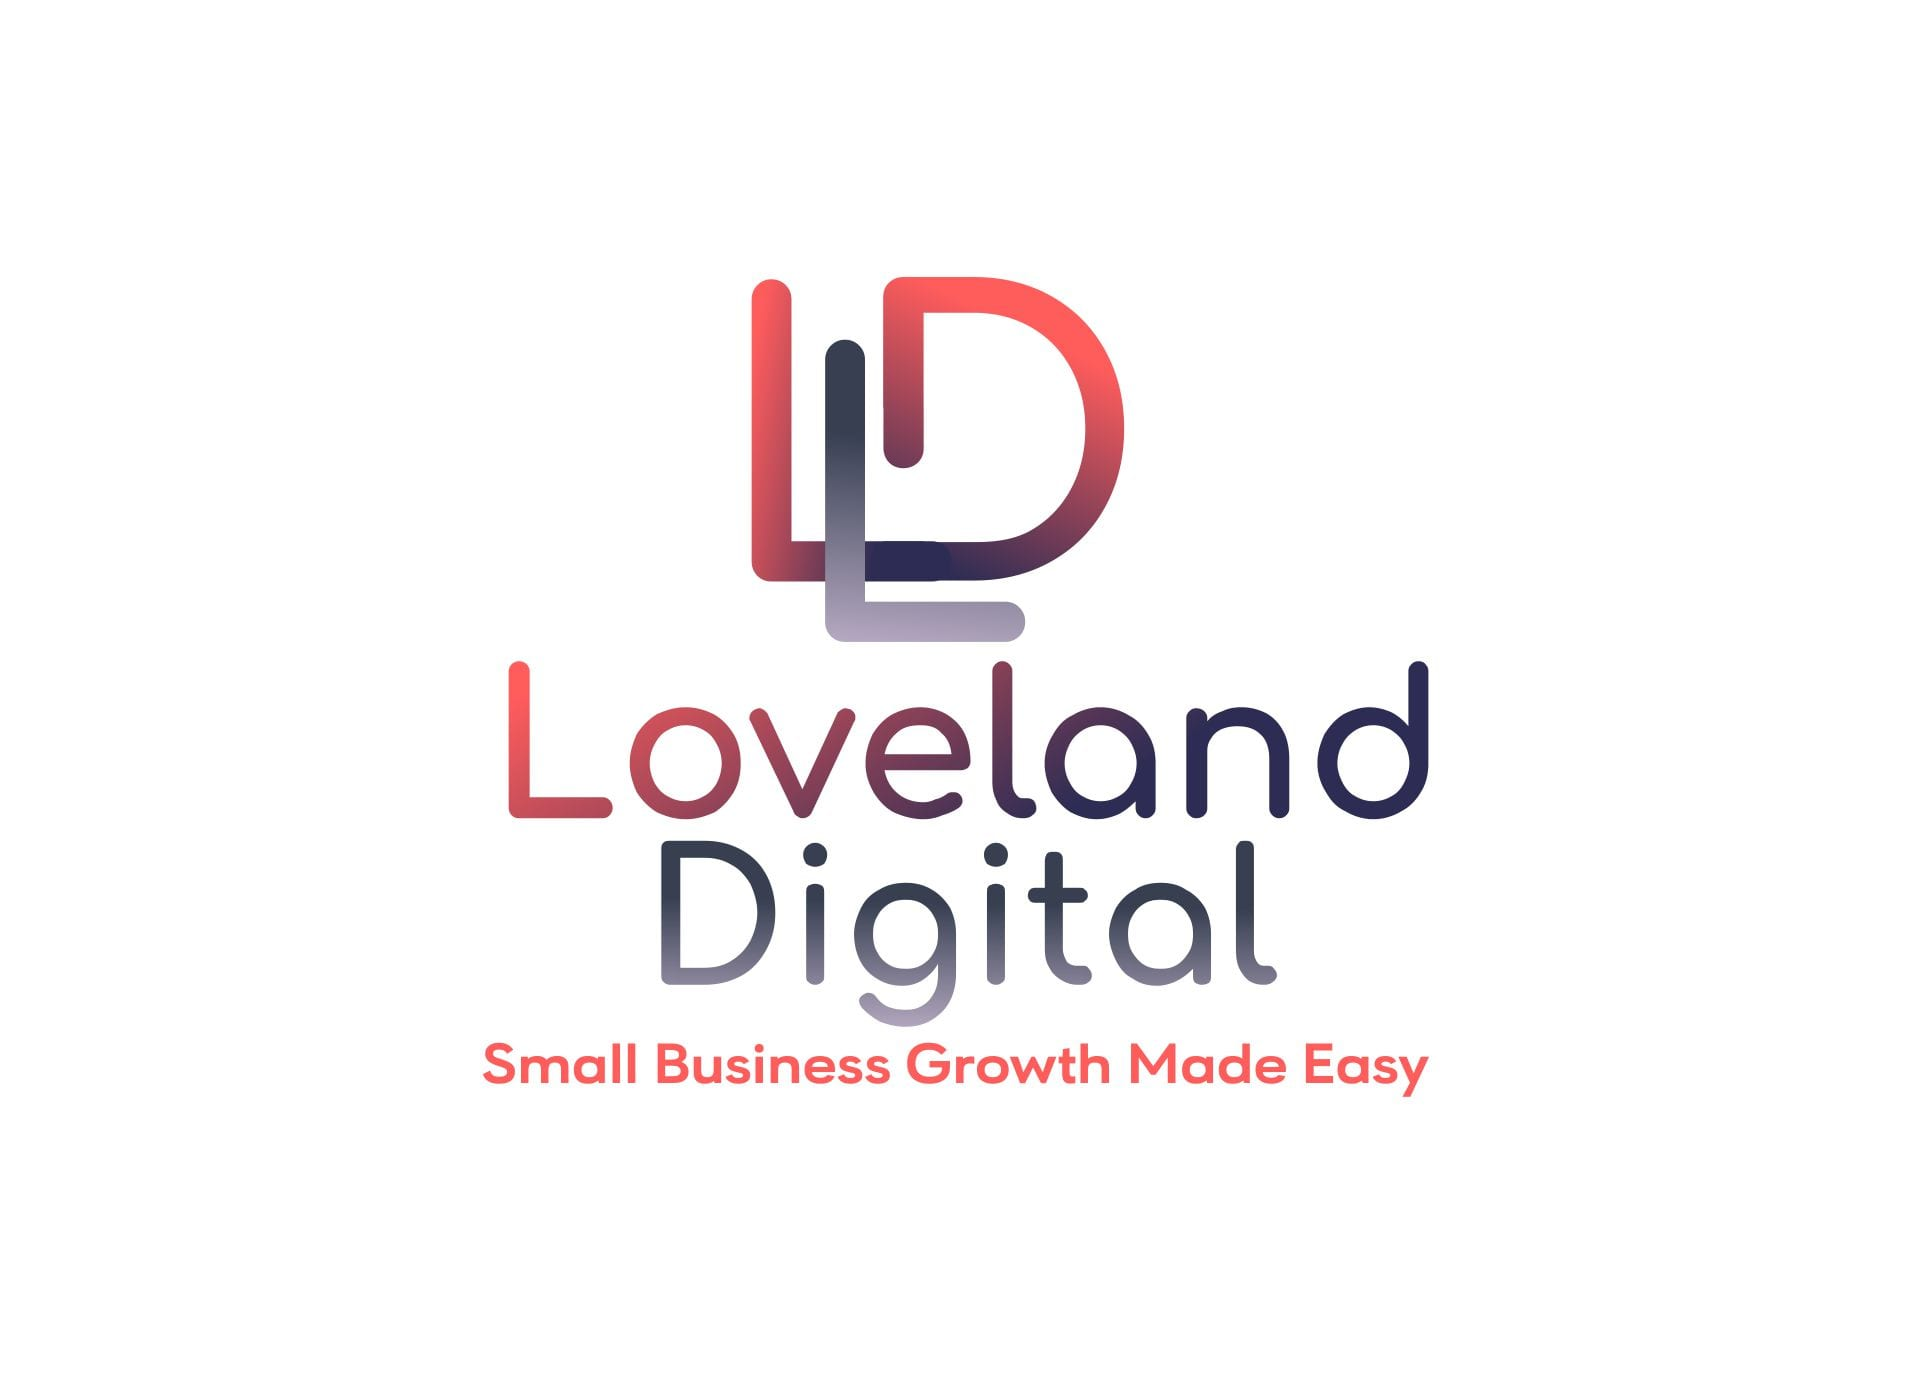 lovelanddigital.com